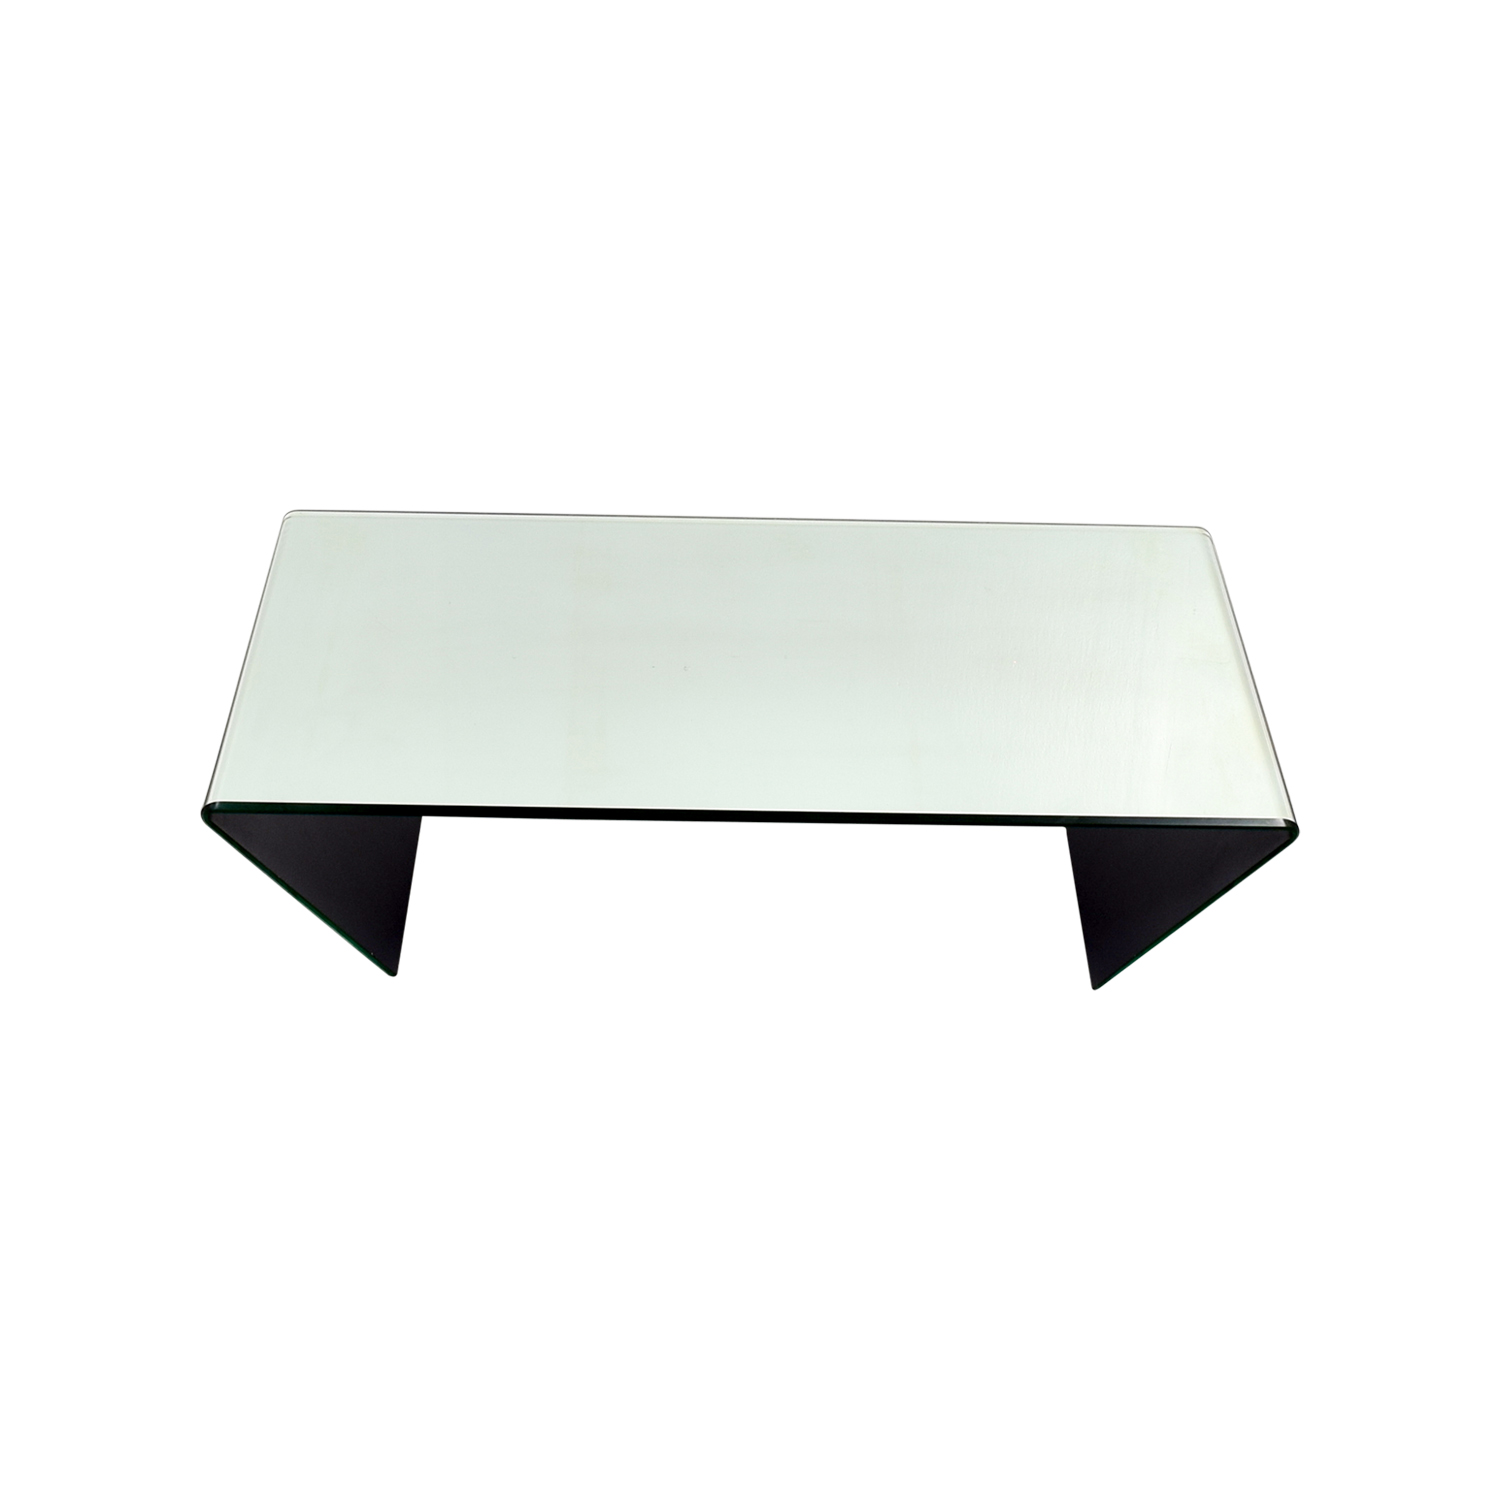 J & M Furniture Bent Mirrored Coffee Table / Tables